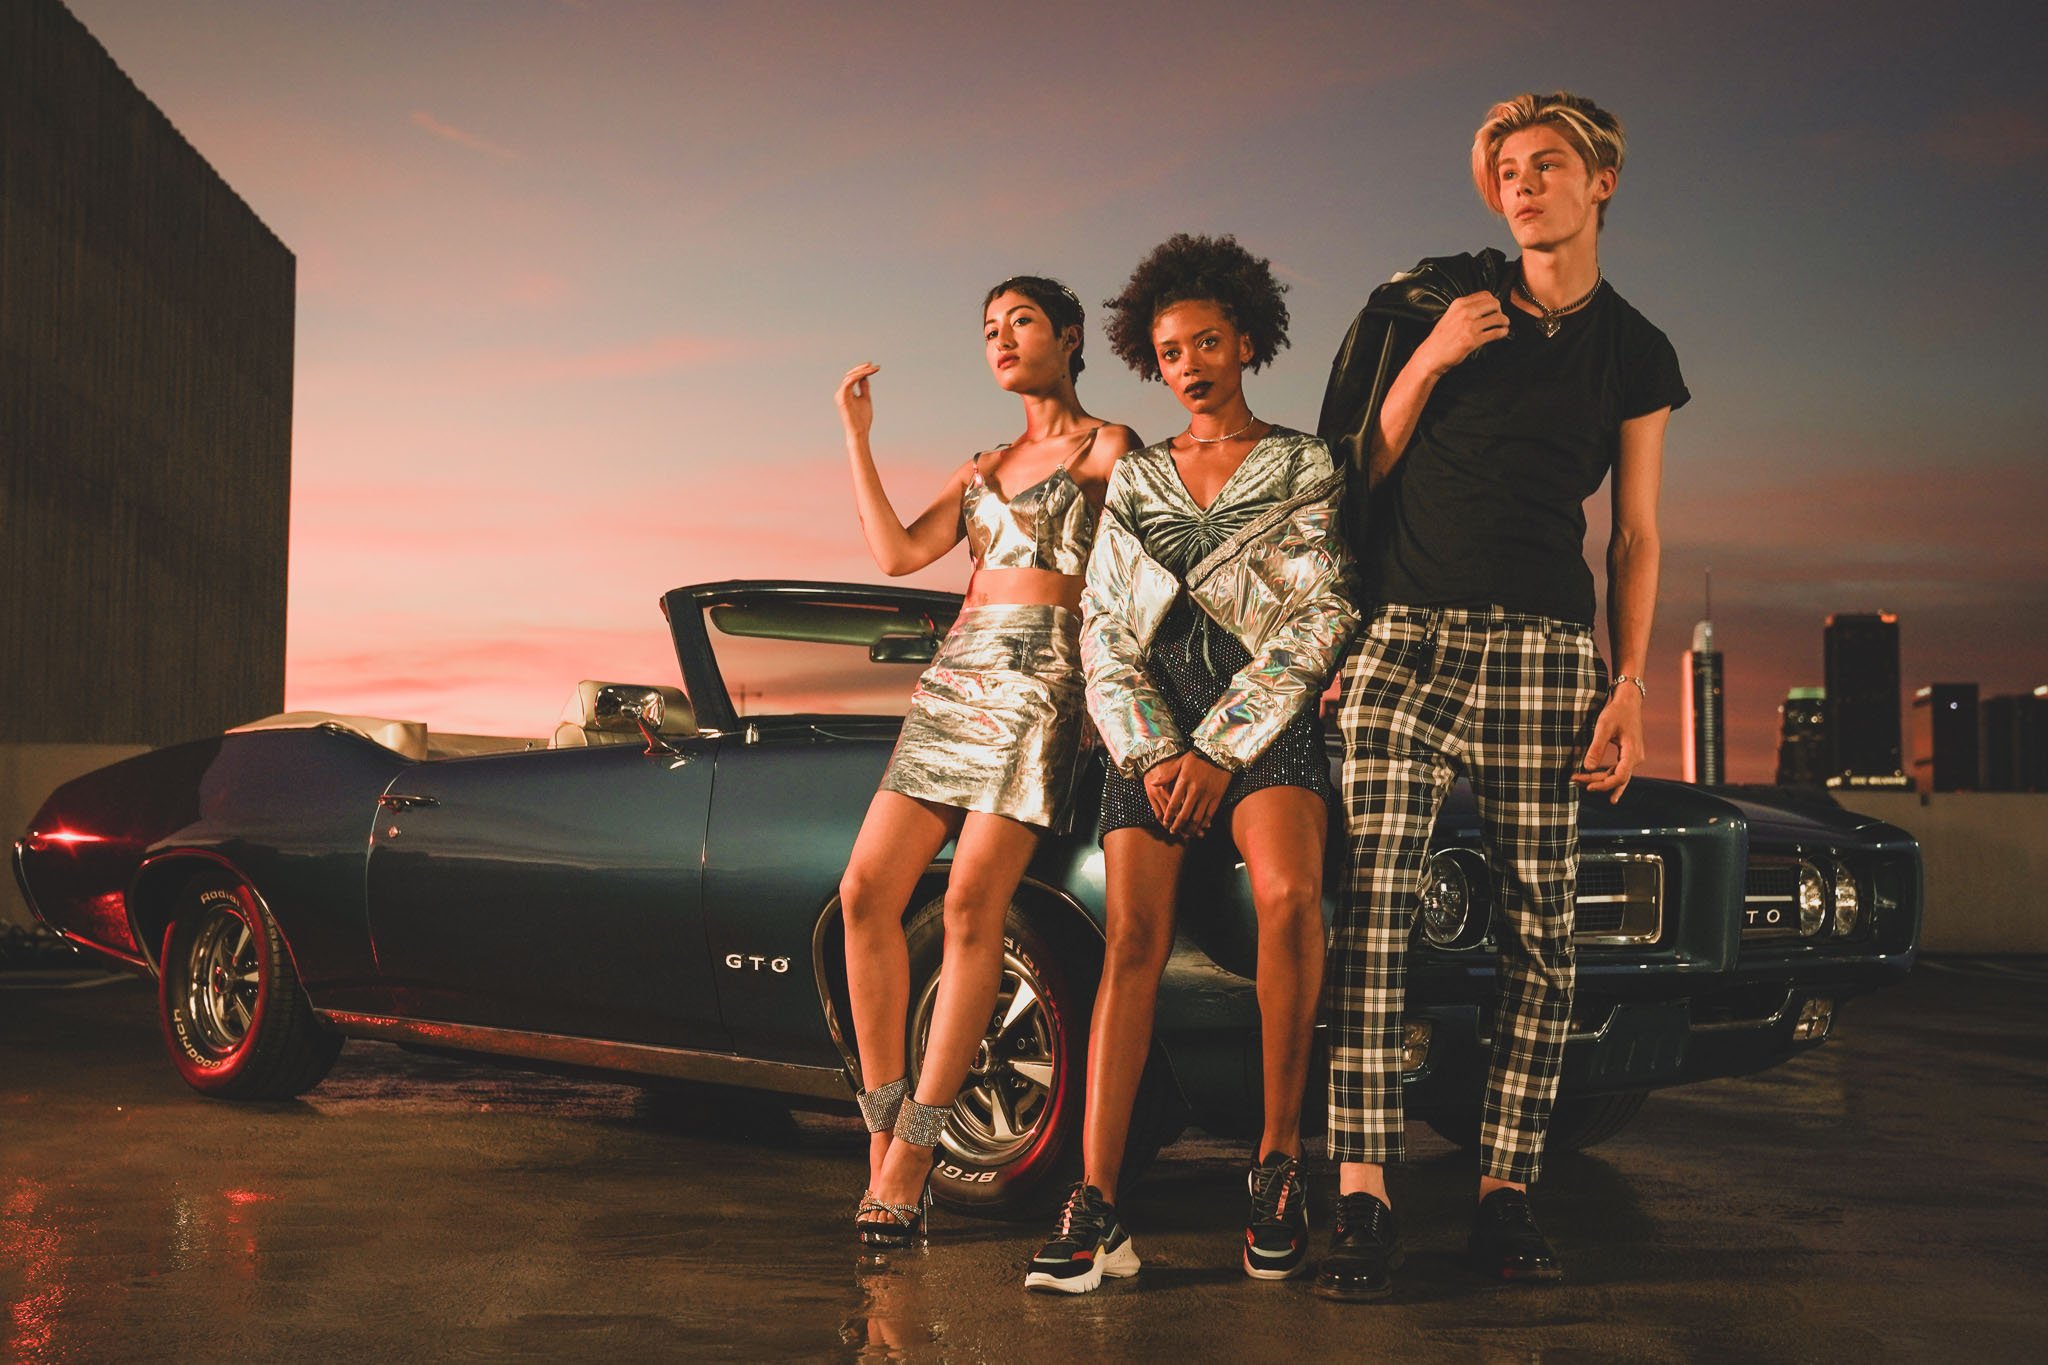 Three models in designer outfits standing in front of a classic car for a commercial photography shoot for special events